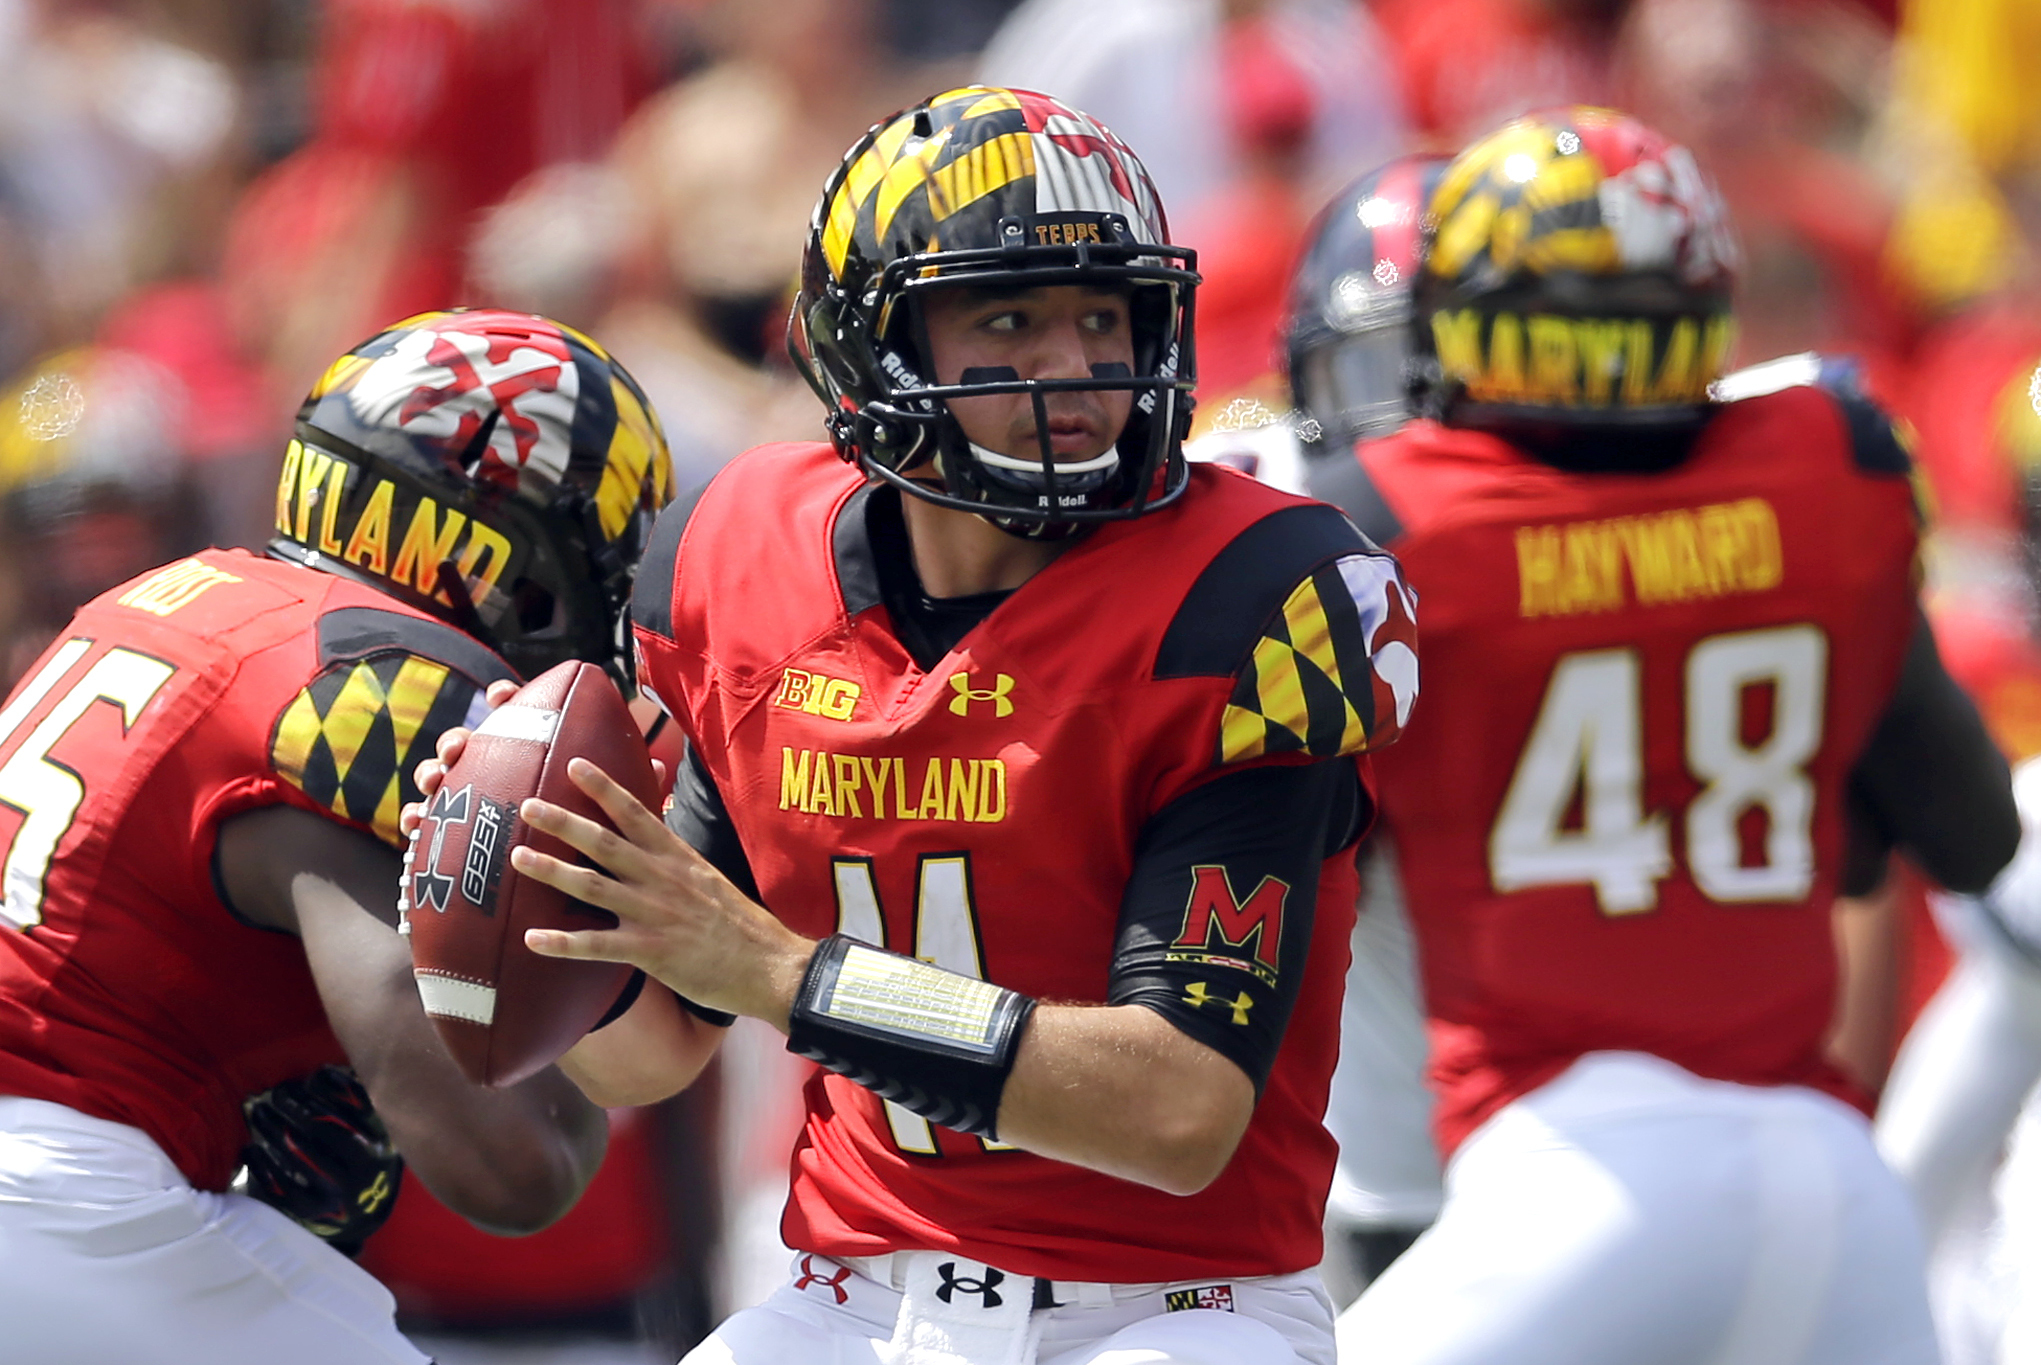 FILE - In this Sept. 5, 2015, file photo, Maryland quarterback Perry Hills looks for a receiver in the first half of an NCAA college football game against Richmond,in College Park, Md. Though first-year coach DJ Durkin is known for his defensive prowess,